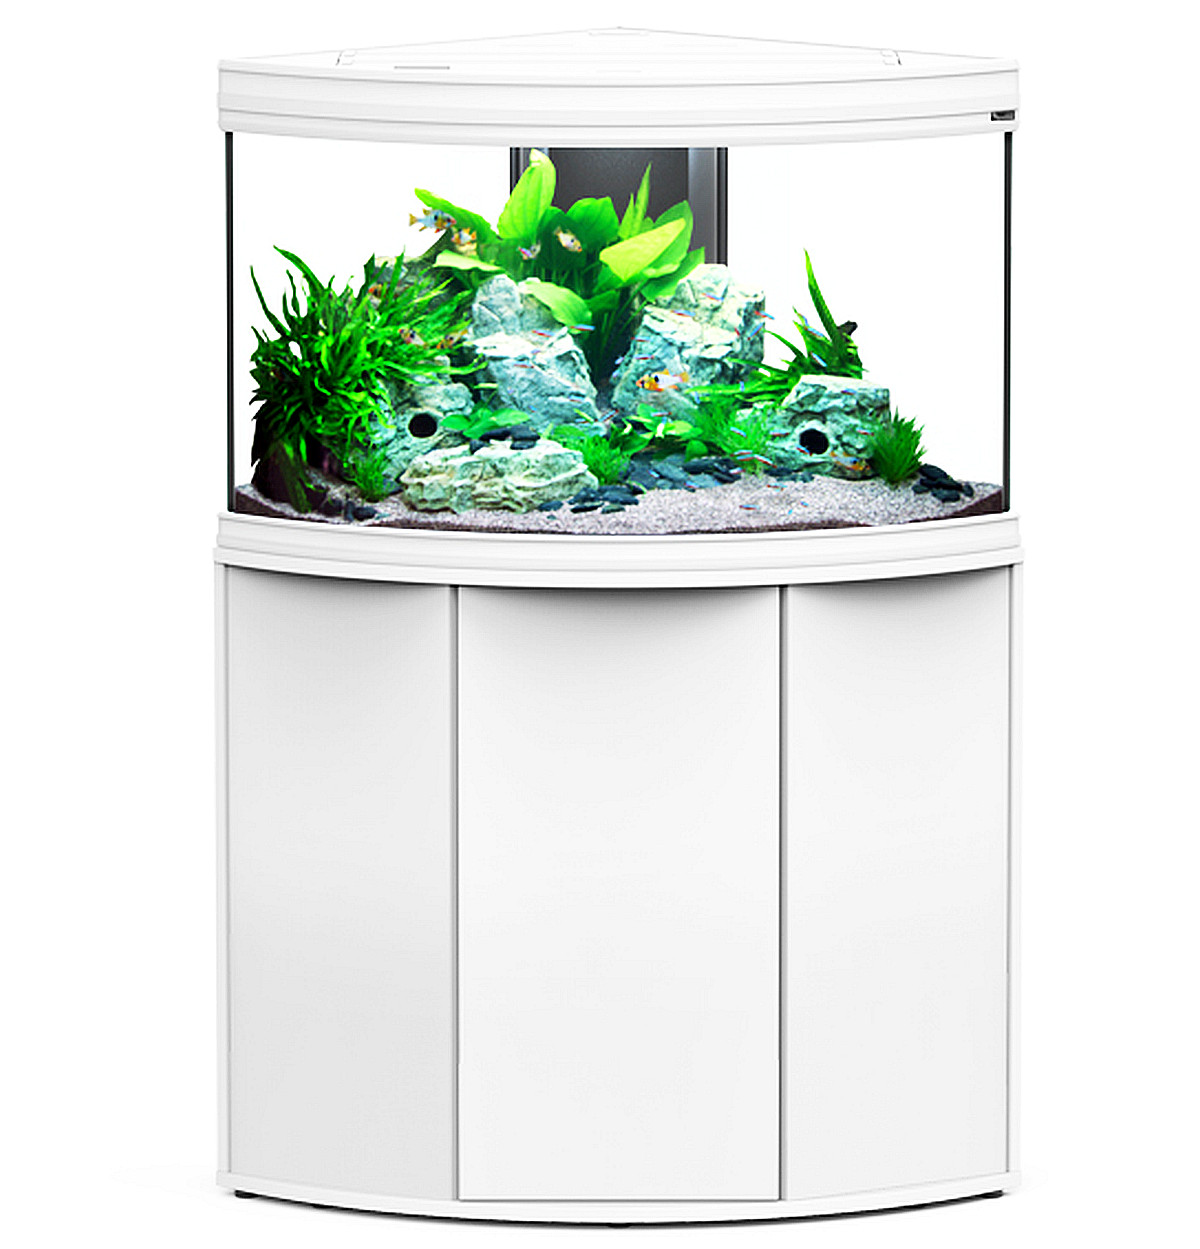 aquarium aquatlantis fusion corner 100 led eckaquarium wei 190 liter. Black Bedroom Furniture Sets. Home Design Ideas